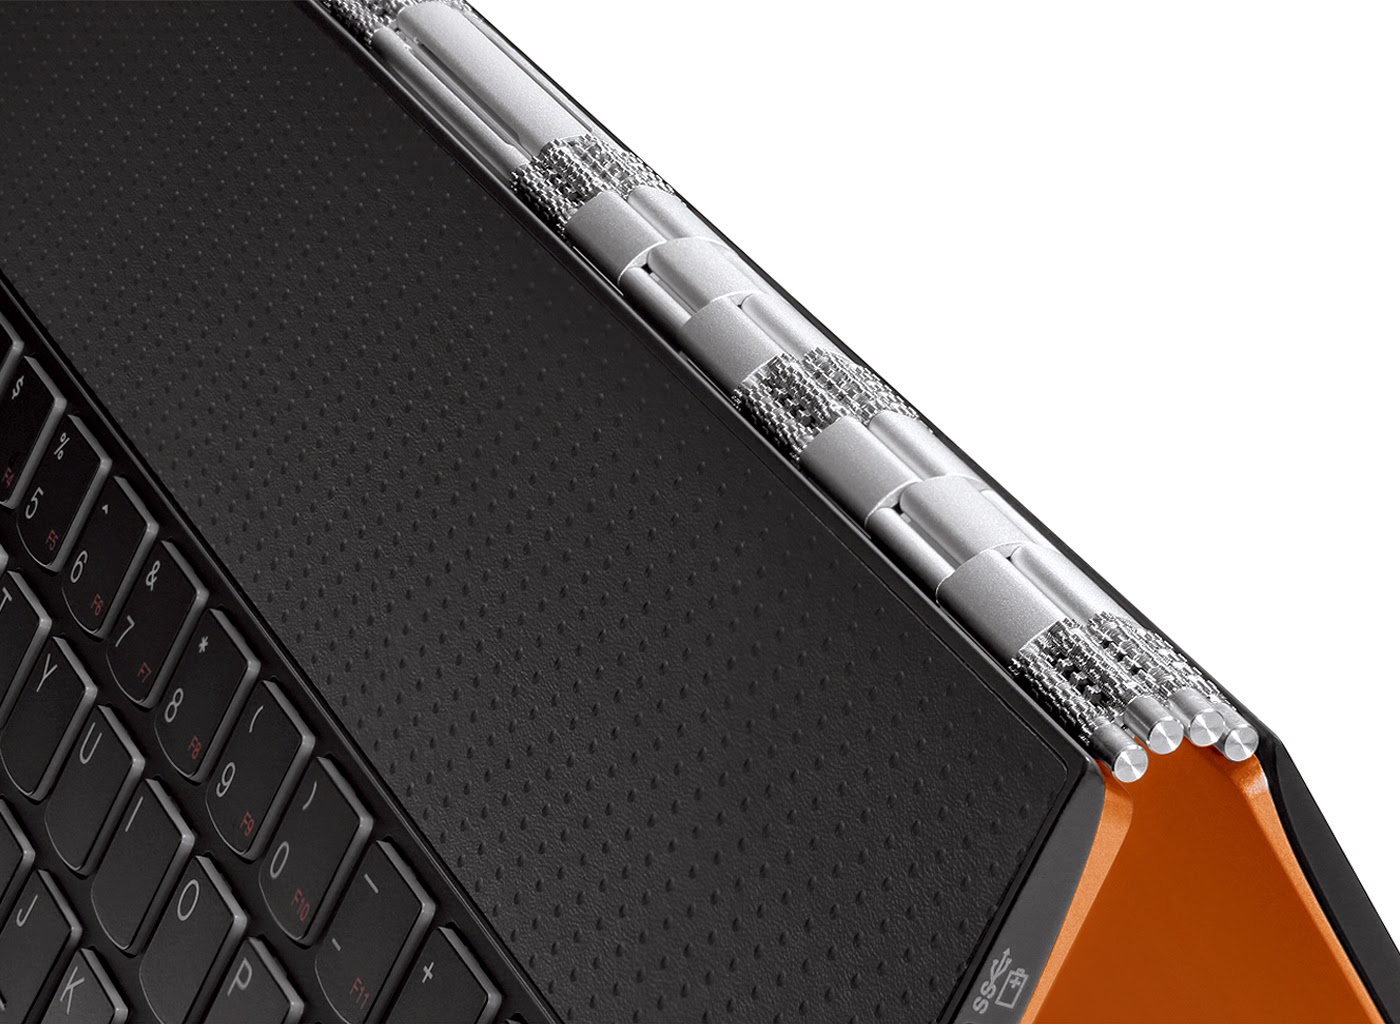 Lenovo YOGA 3 Pro is Thin, Light, Flexible and Probably the Best Windows Laptop Today